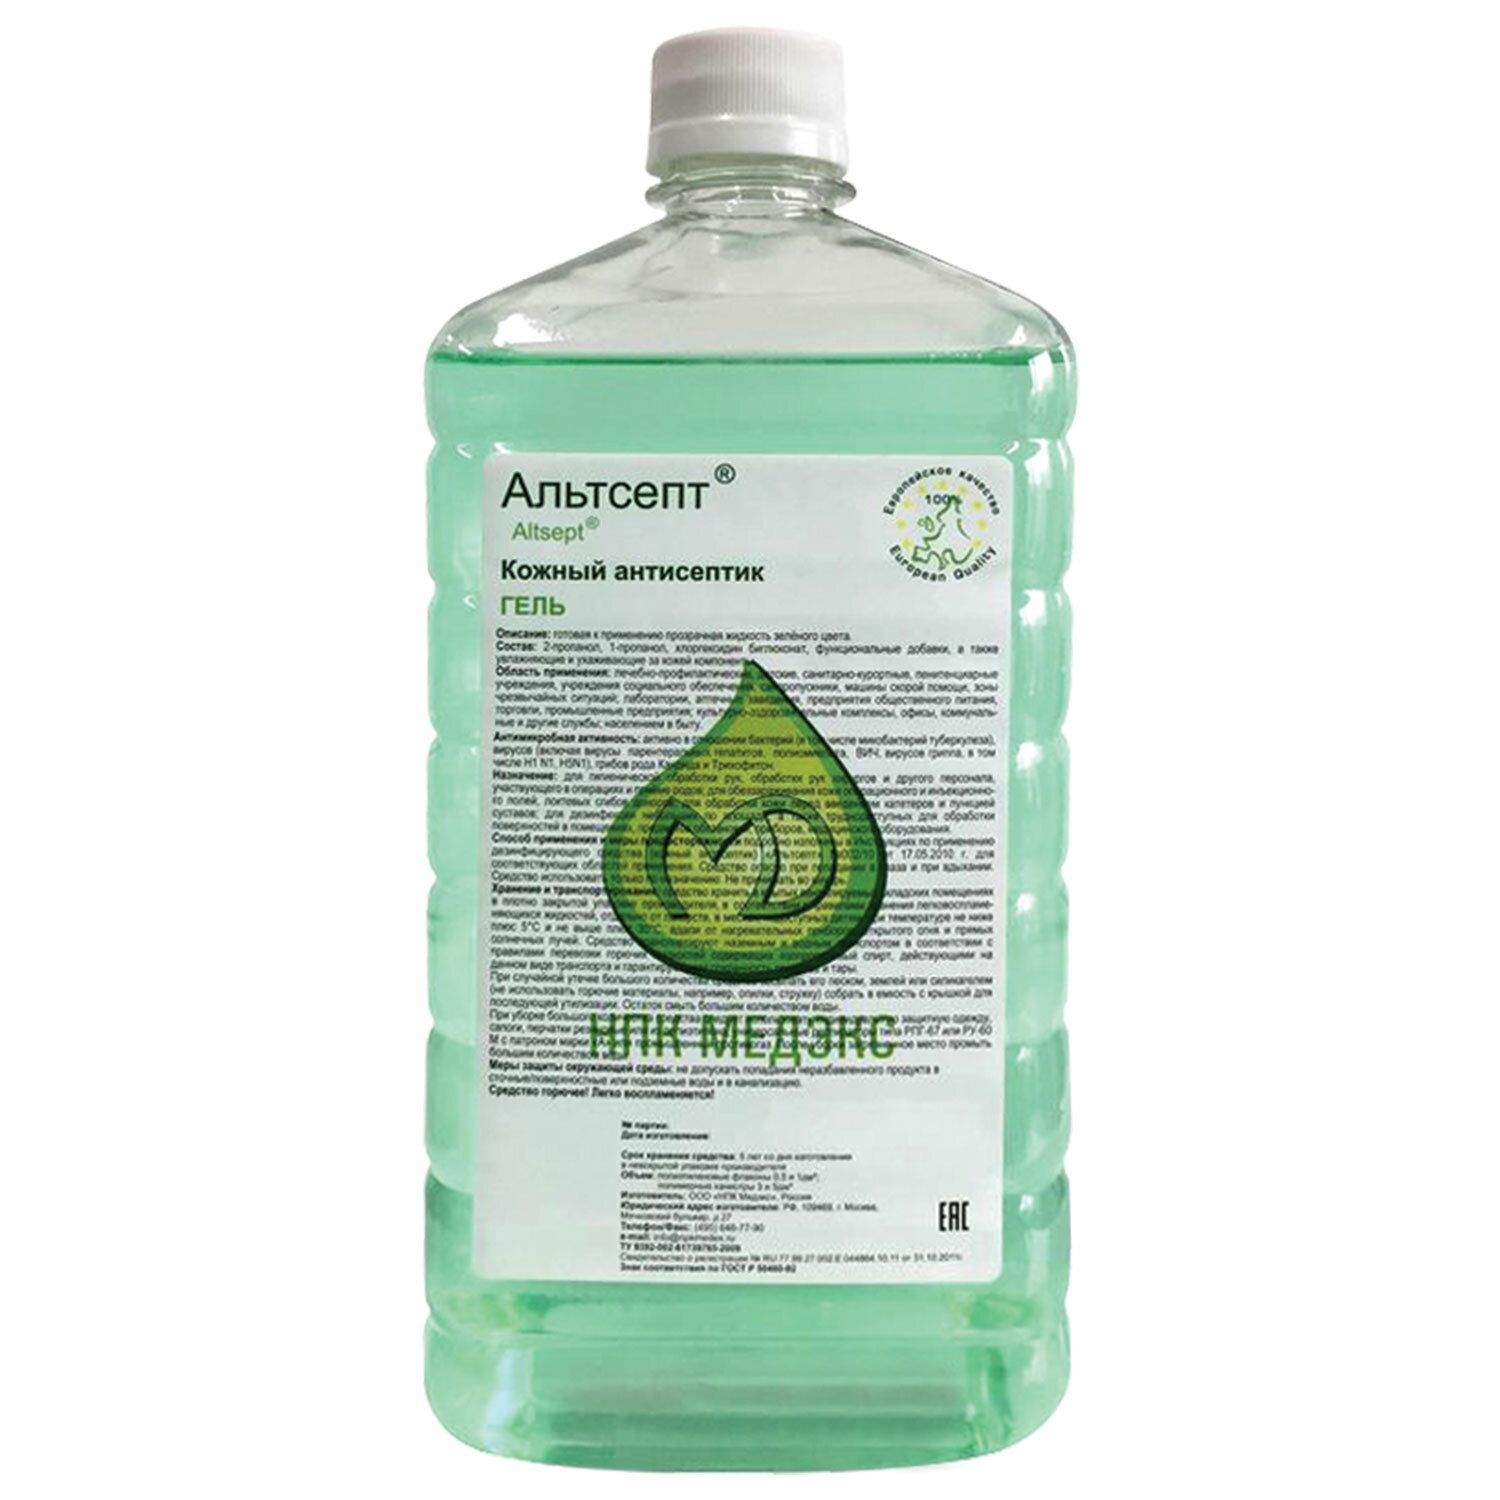 ALTSEPT / Antiseptic, skin disinfecting alcohol-containing 70% gel, 1 l, lid